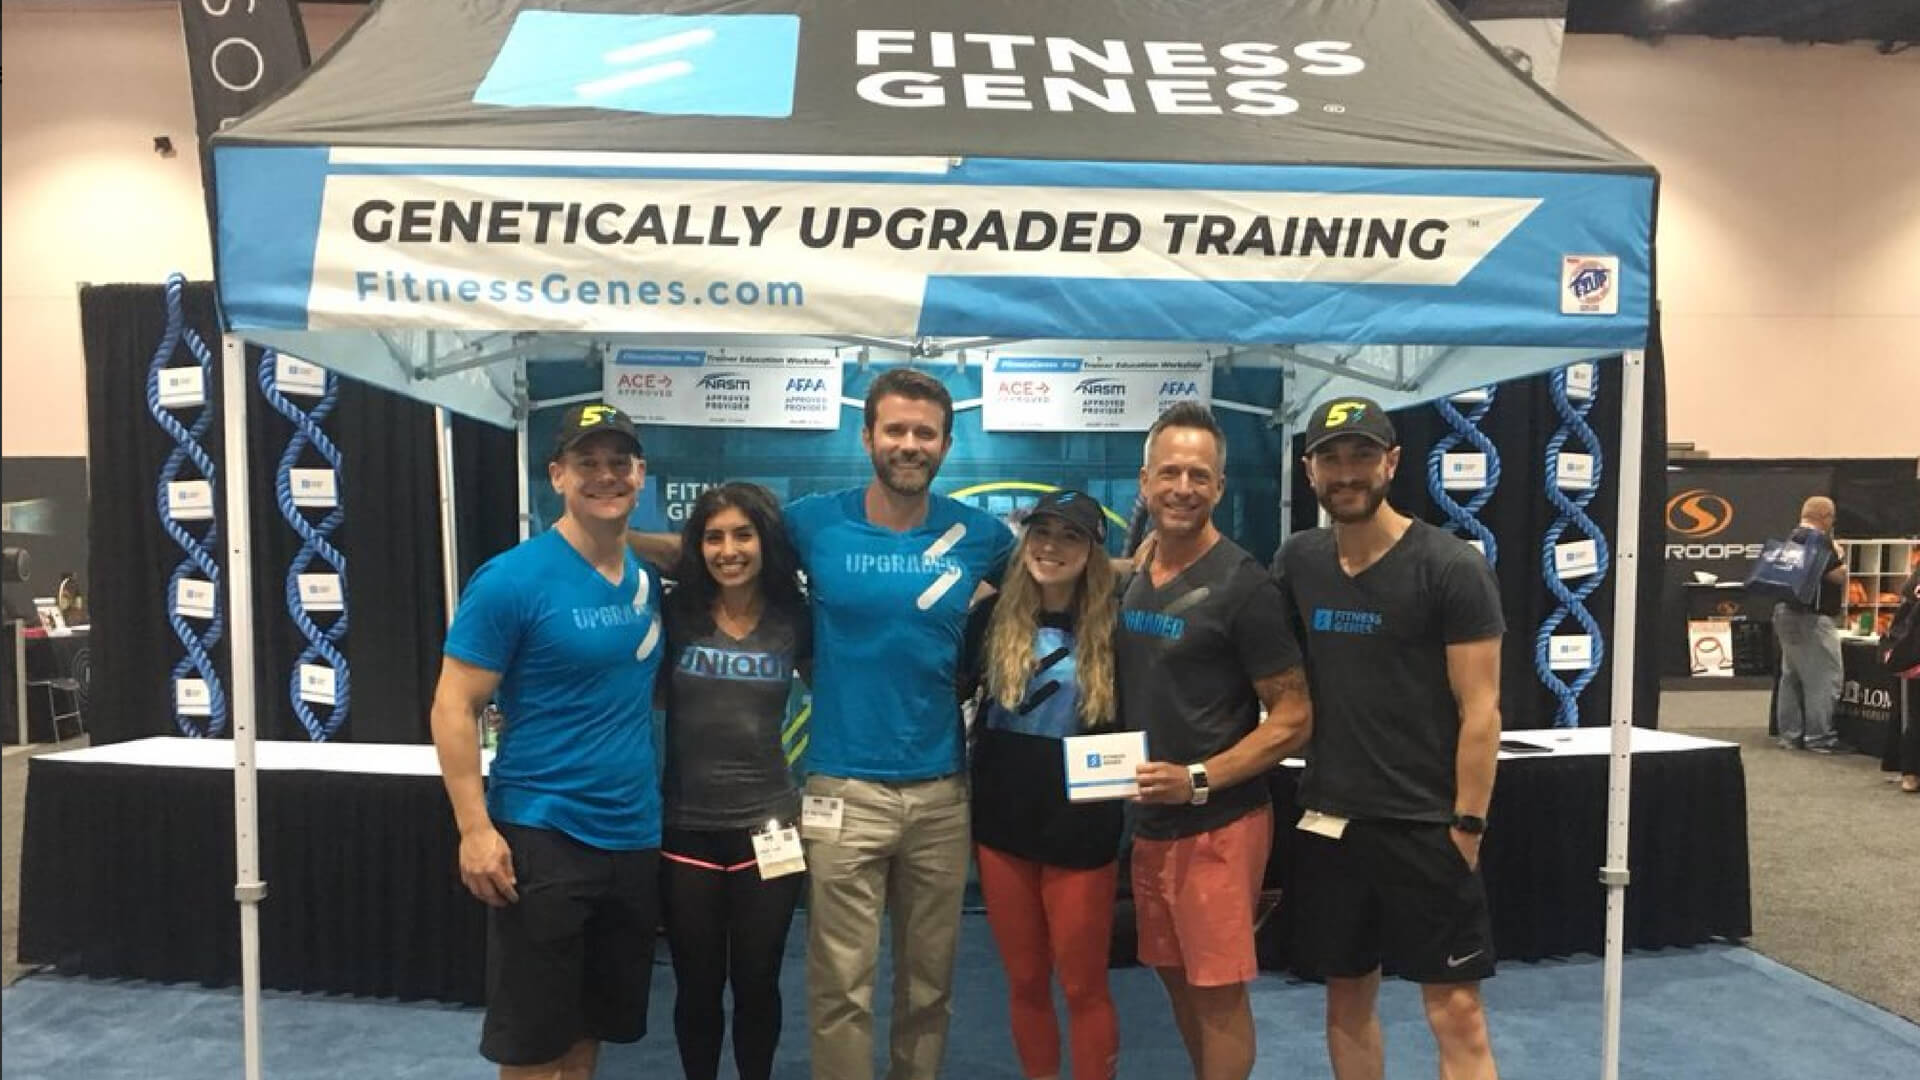 FitnessGenes Pro launches at IDEA World in San Diego